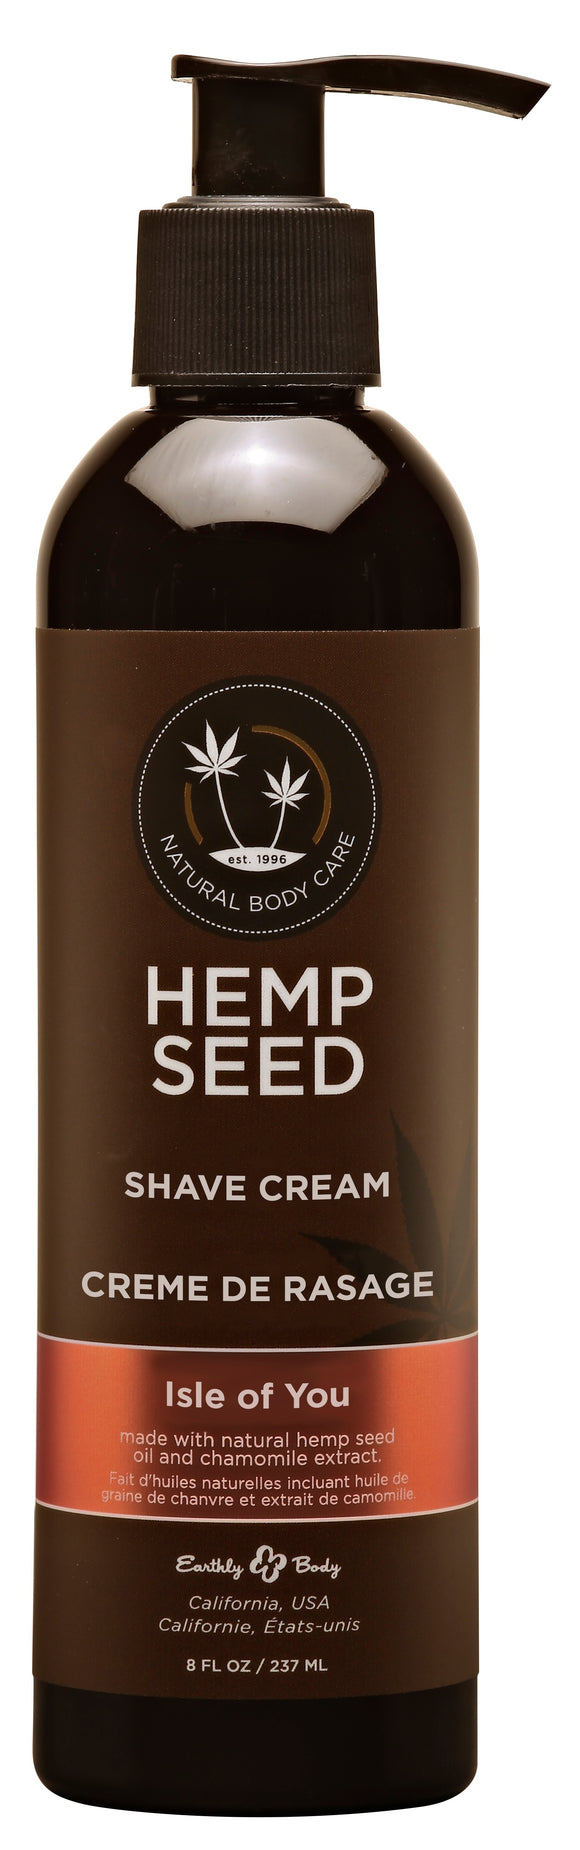 Hemp Seed Shave Cream - Isle of You 8oz EB-HSSK052